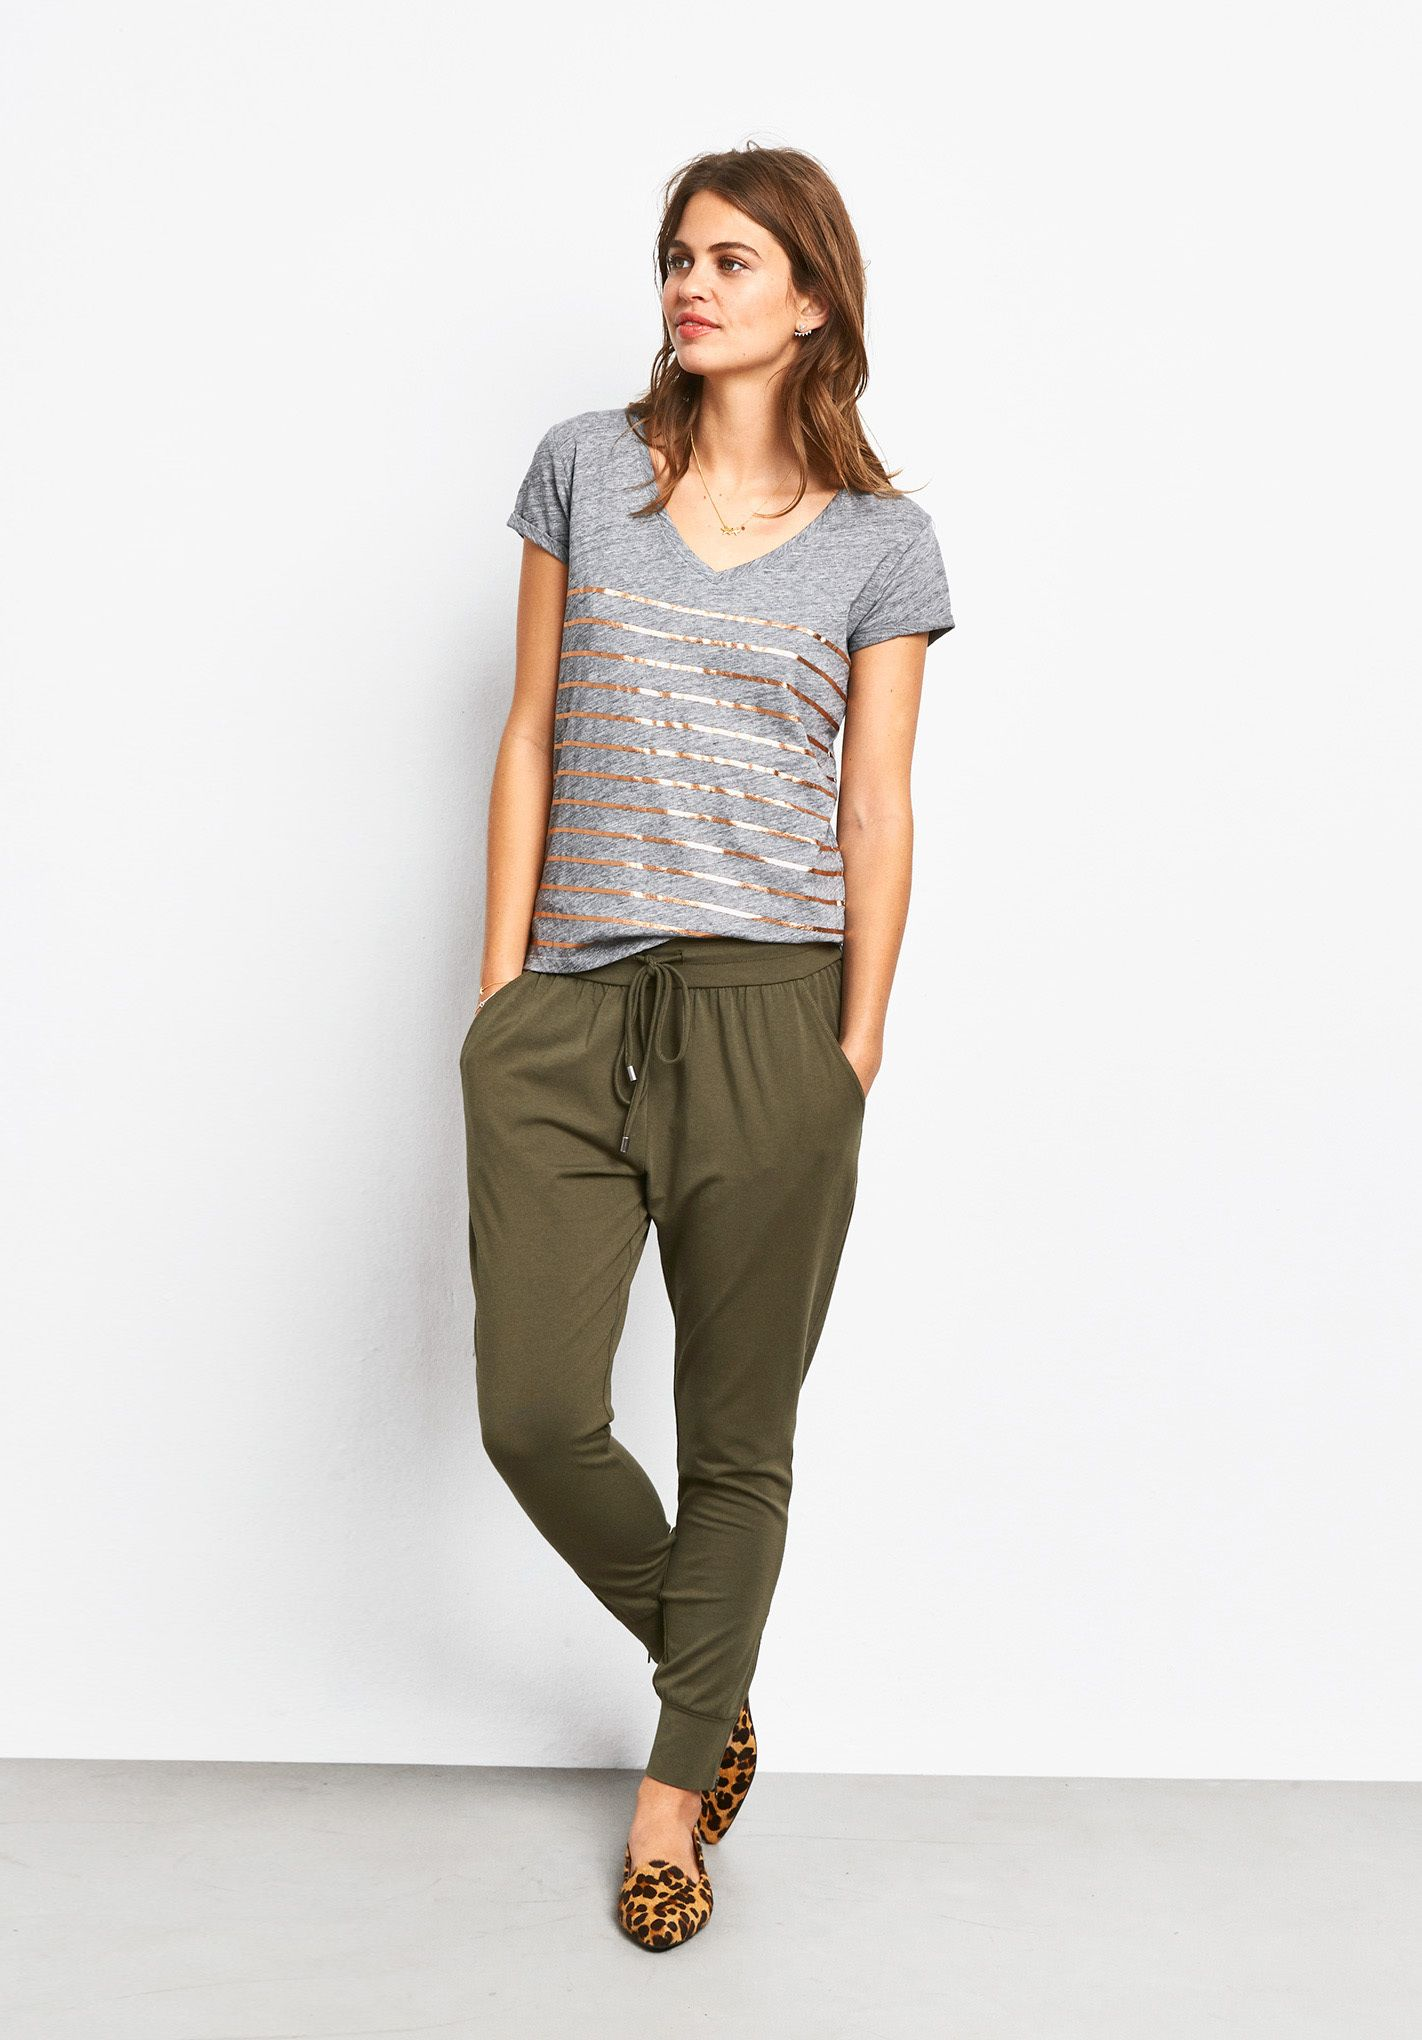 Forum on this topic: The Perfect Evening Trousers for Girls Who , the-perfect-evening-trousers-for-girls-who/